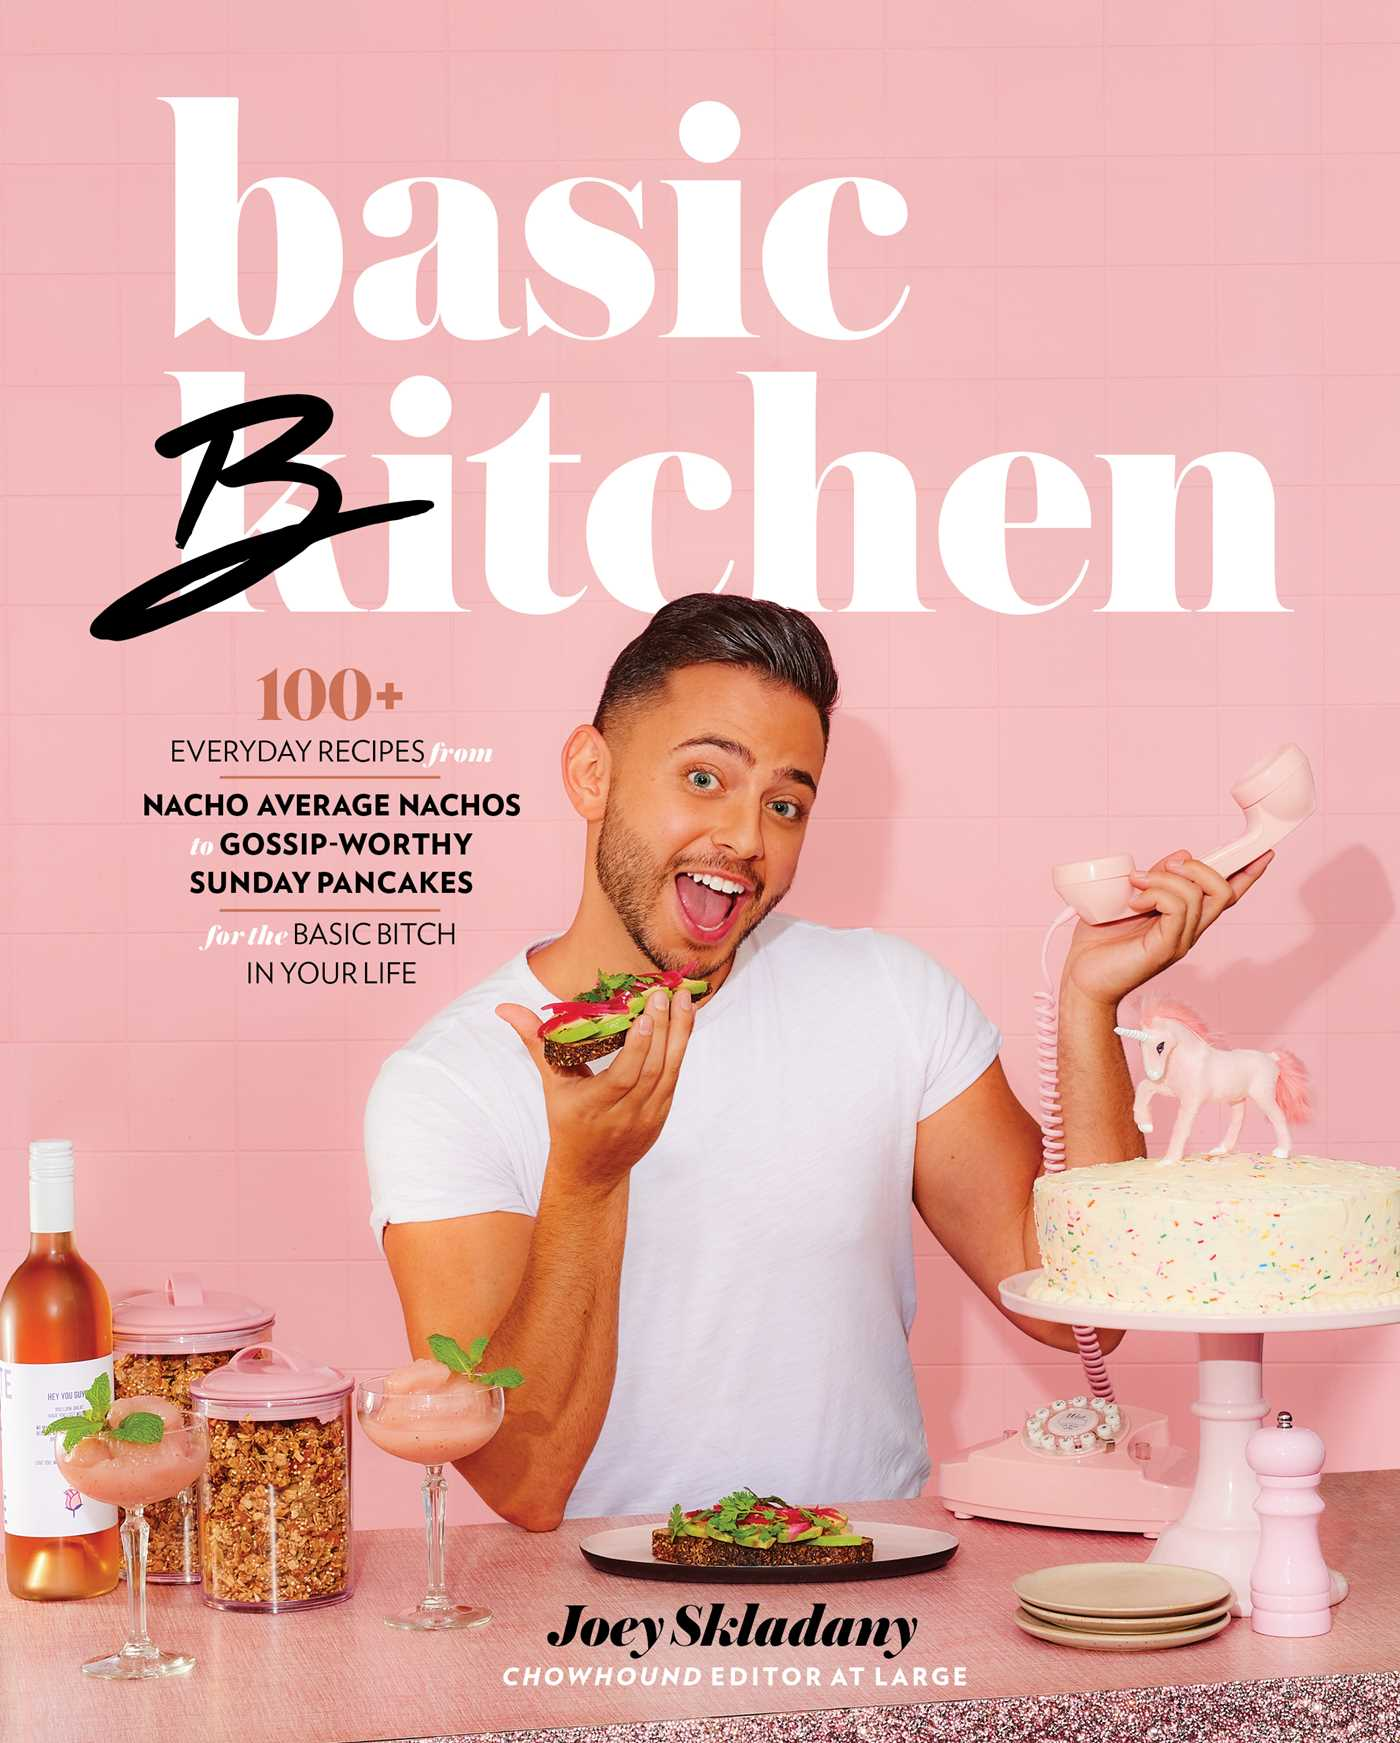 Basic Bitchen: 100+ Everyday Recipes—from Nacho Average Nachos to Gossip-Worthy Sunday Pancakes—for the Basic Bitch in Your Life